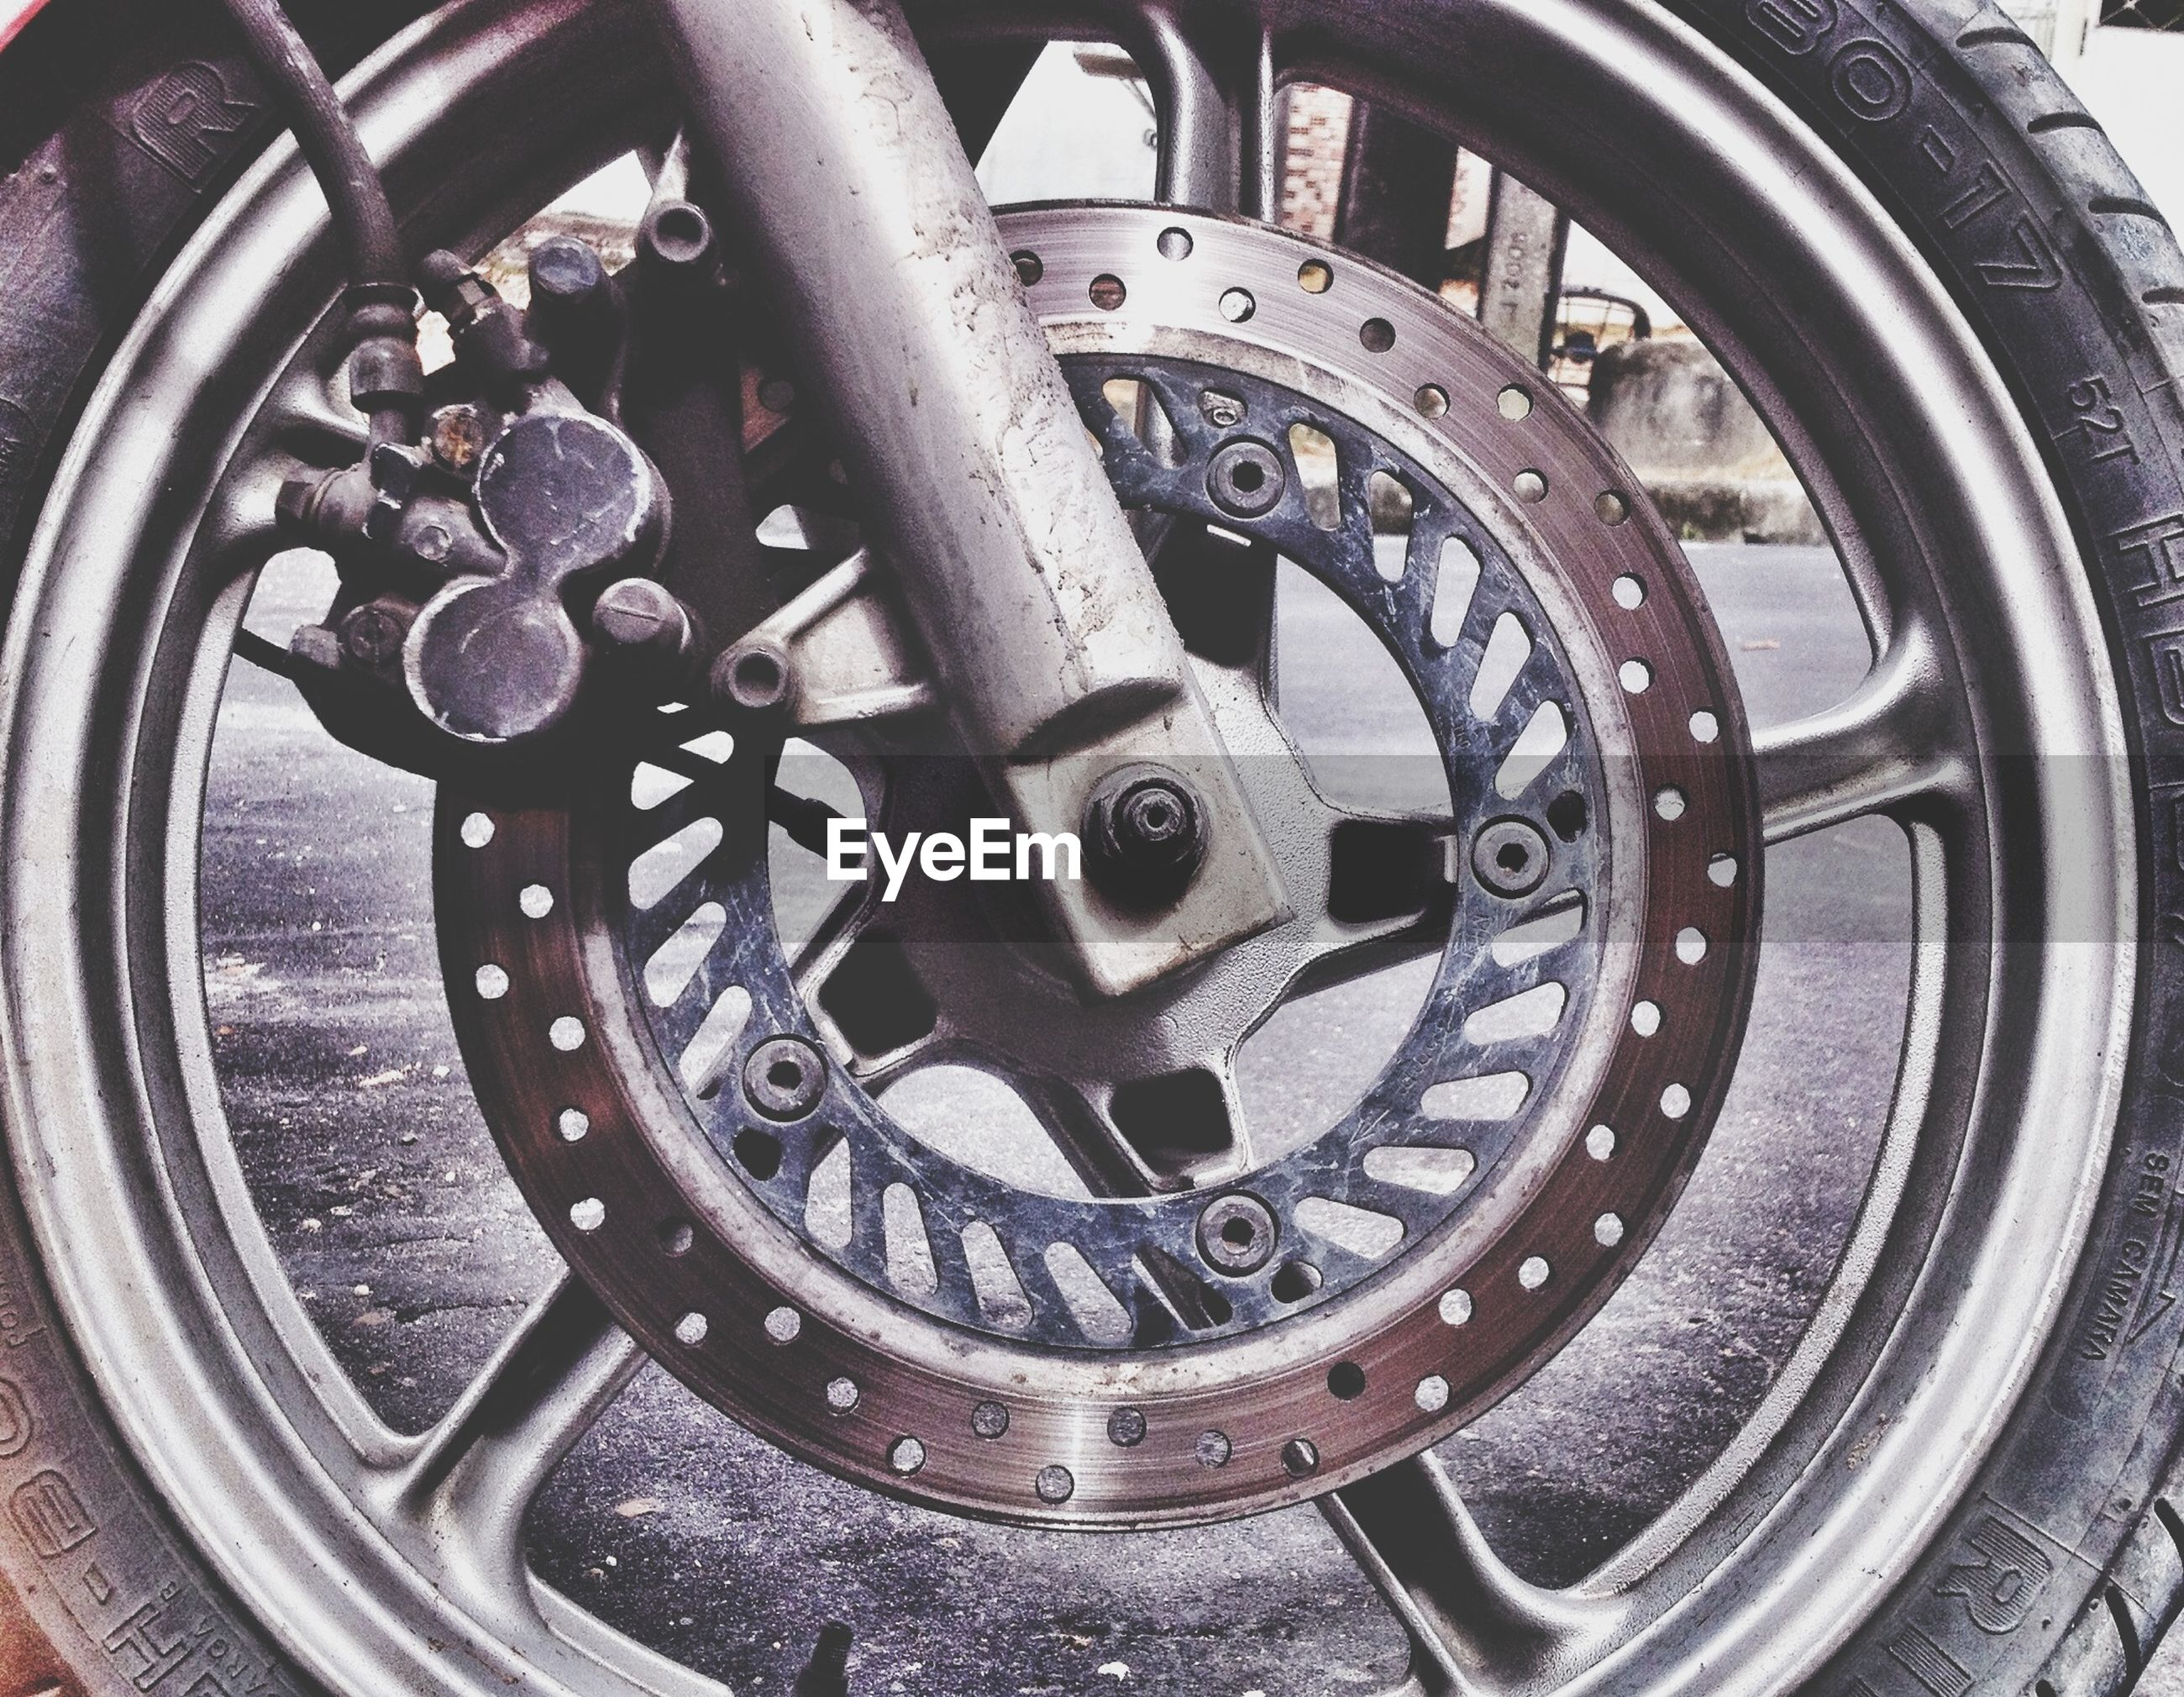 metal, metallic, machine part, wheel, indoors, circle, close-up, old, high angle view, rusty, old-fashioned, transportation, machinery, no people, day, connection, part of, iron - metal, geometric shape, technology